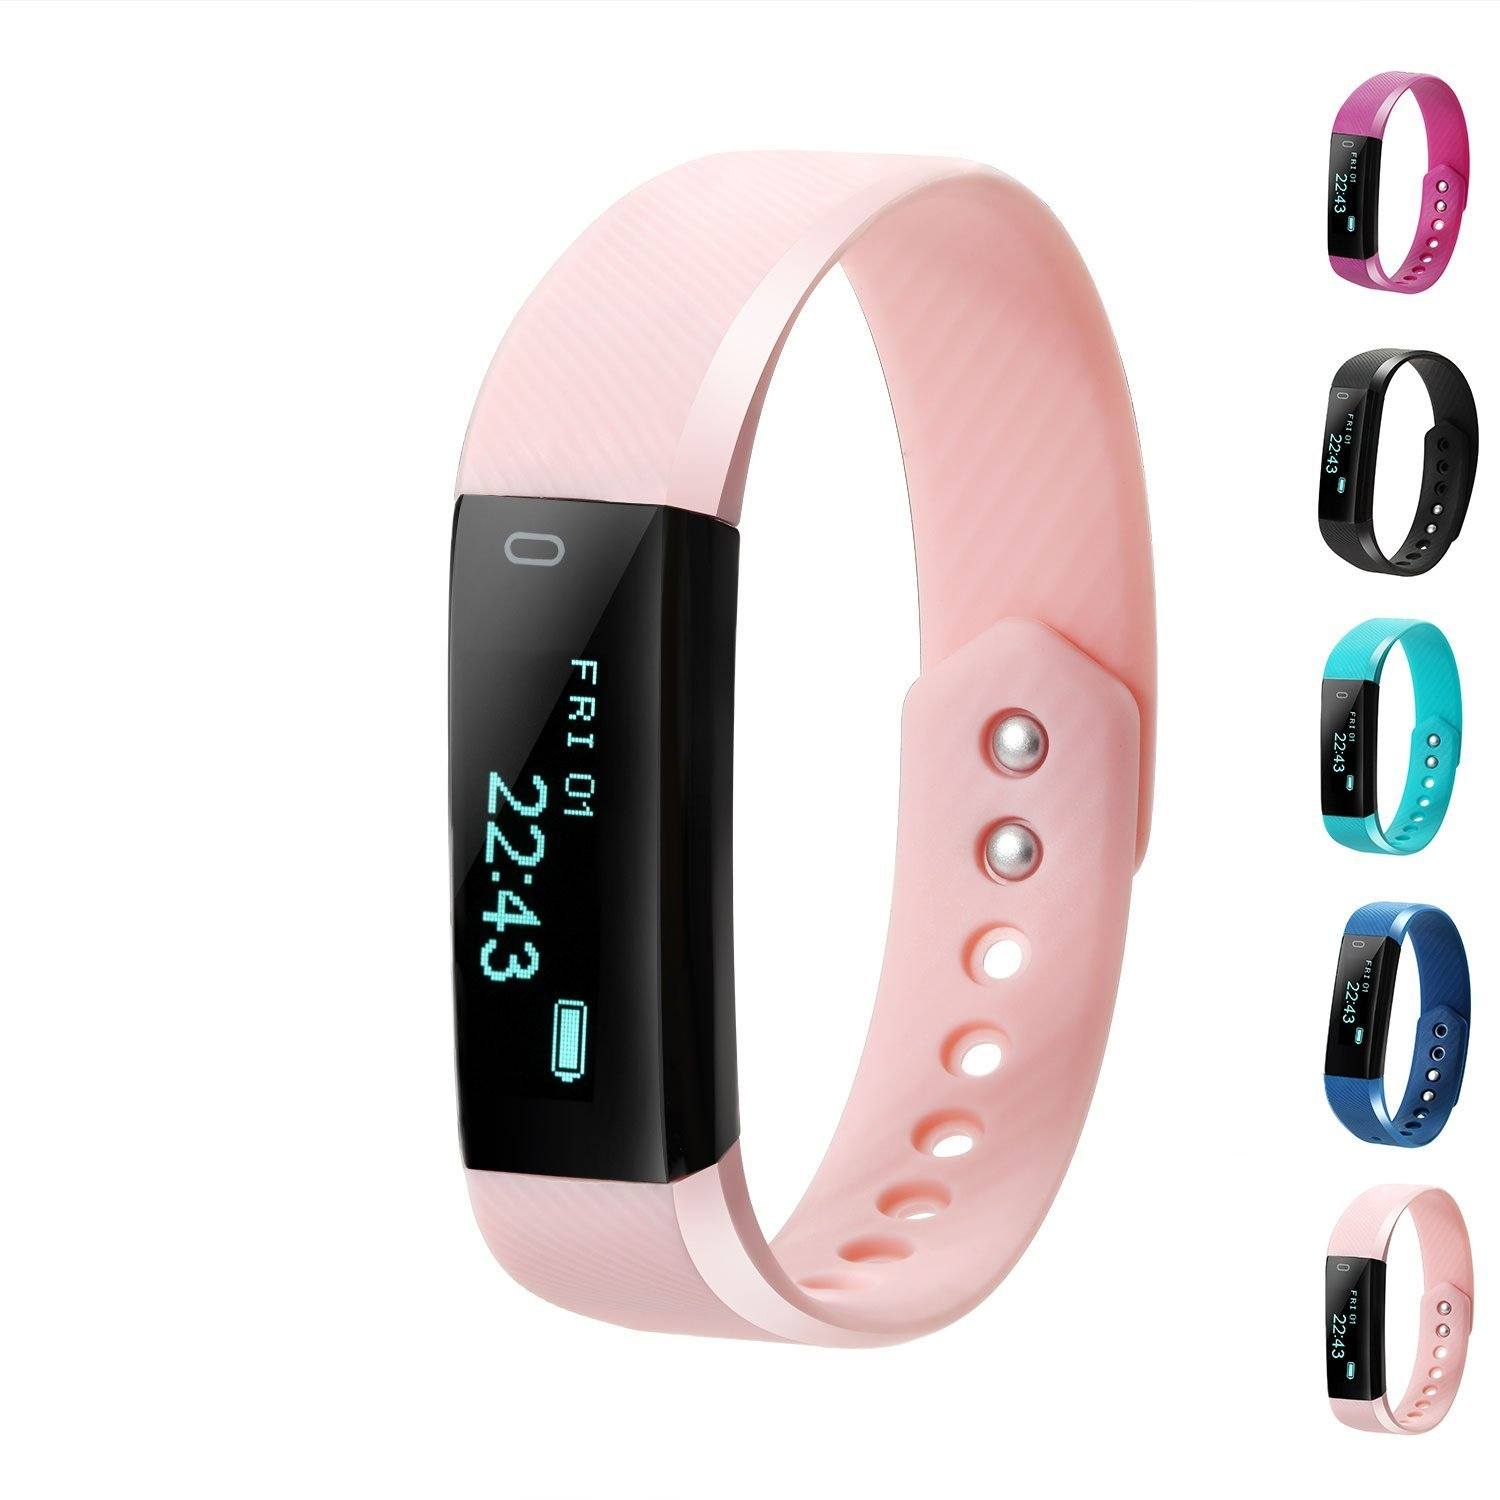 Fitness Tracker, LCStream Smart Watch Health Bracelet Activity Tracker with Step track, Calories track, Sleep monitor, pedometer for iOS and Android (Pink)